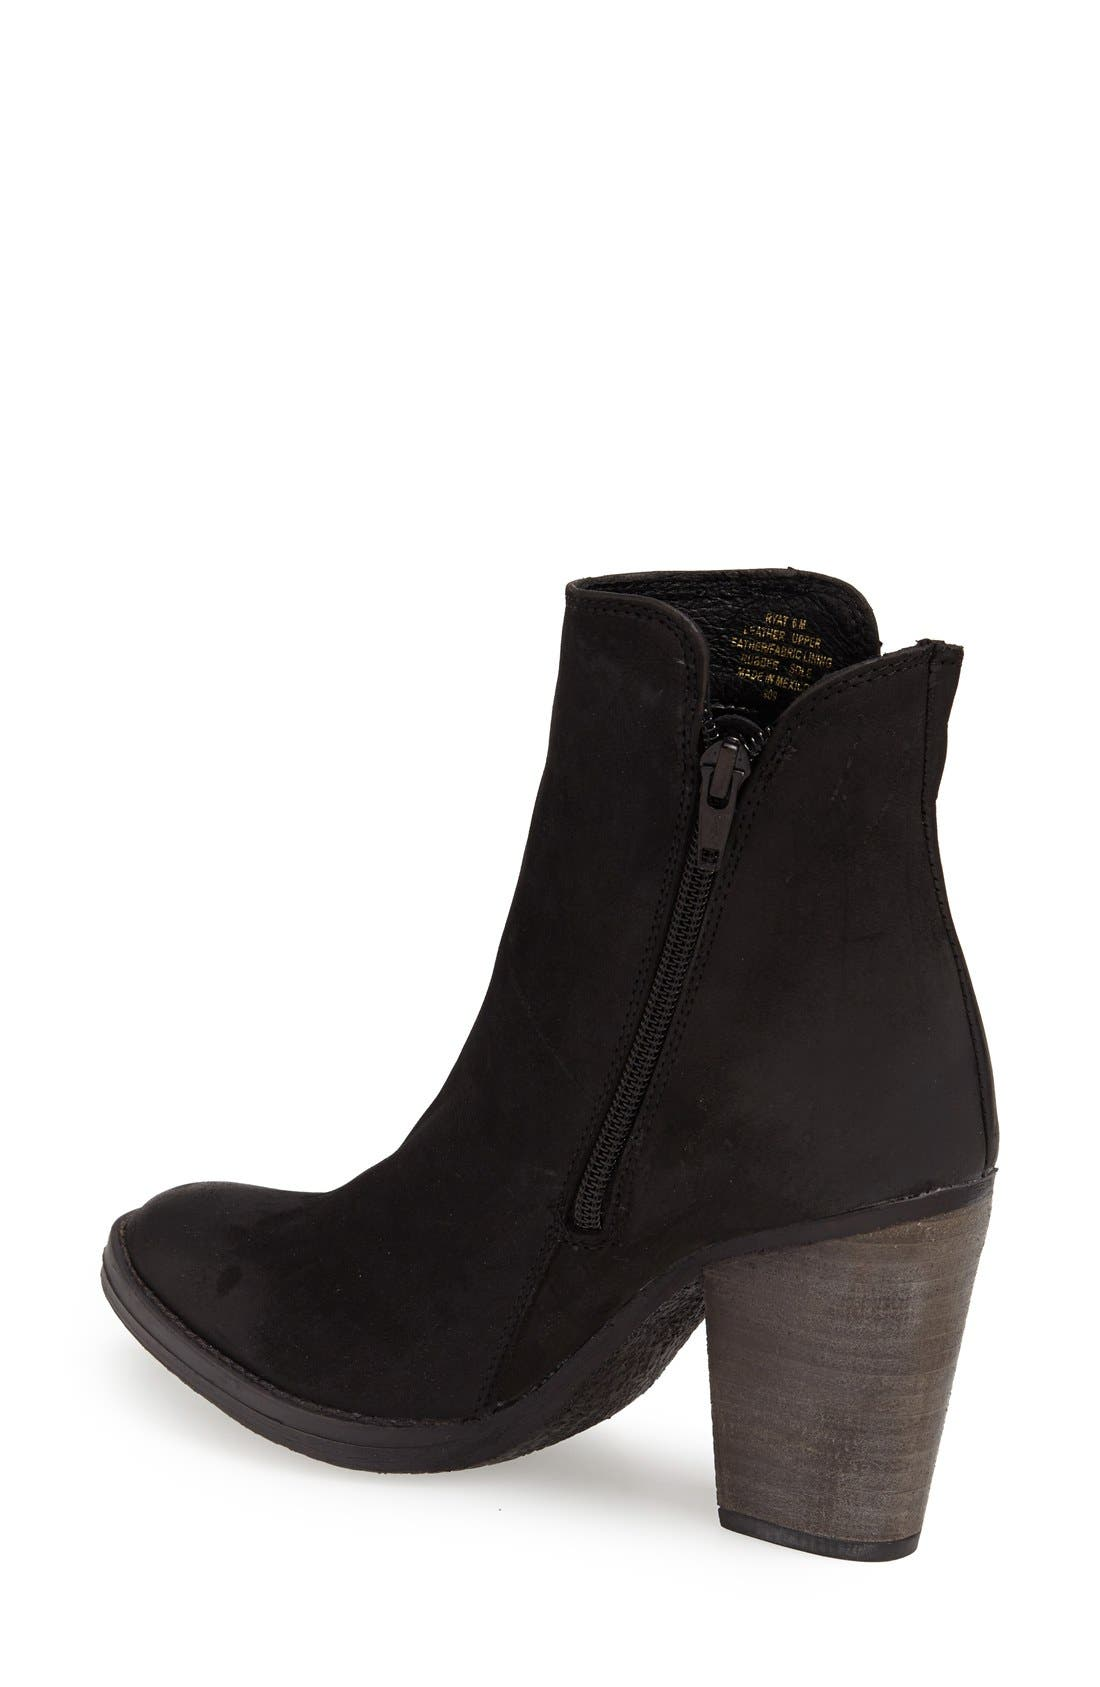 'Ryat' Leather Ankle Bootie,                             Alternate thumbnail 3, color,                             001